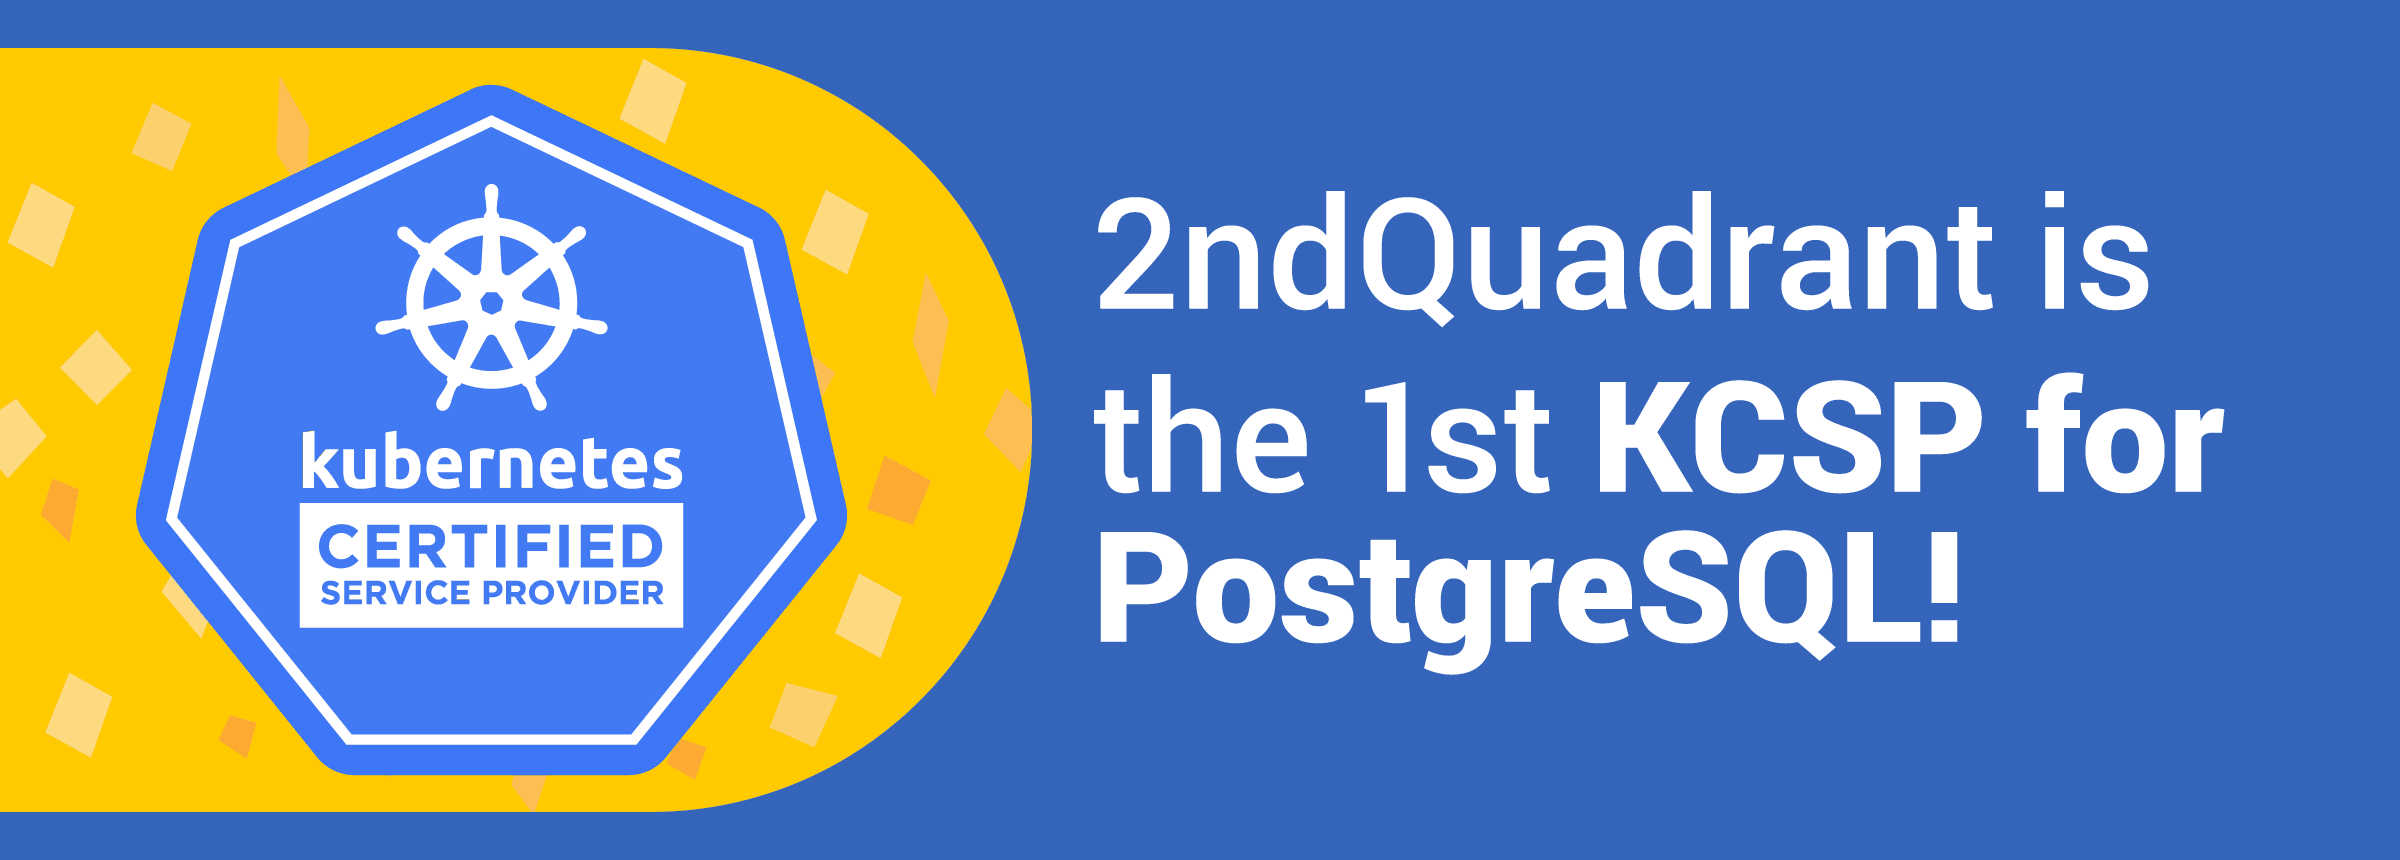 2ndQuadrant is the 1st KCSP for PostgreSQL